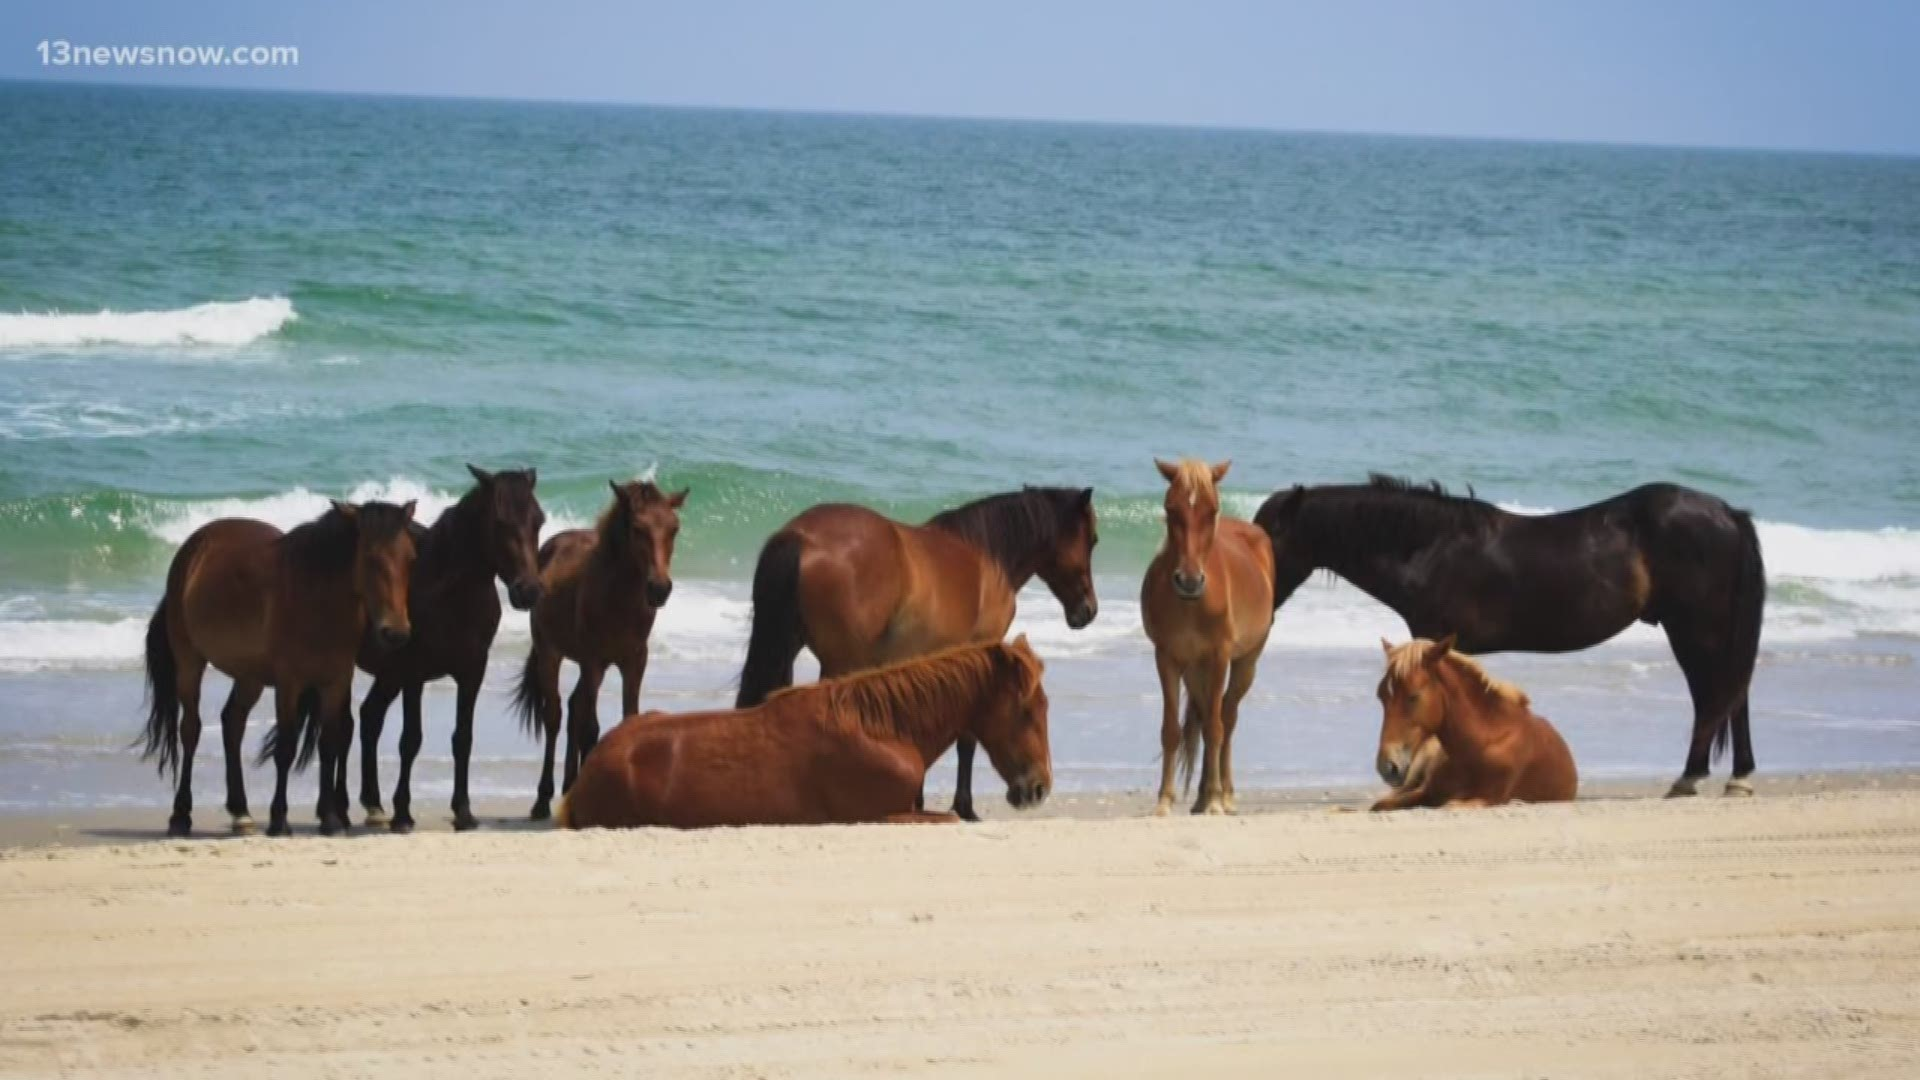 Do Not Do This Group Warns Visitors To Stay Away From Wild Horses On The Outer Banks 13newsnow Com